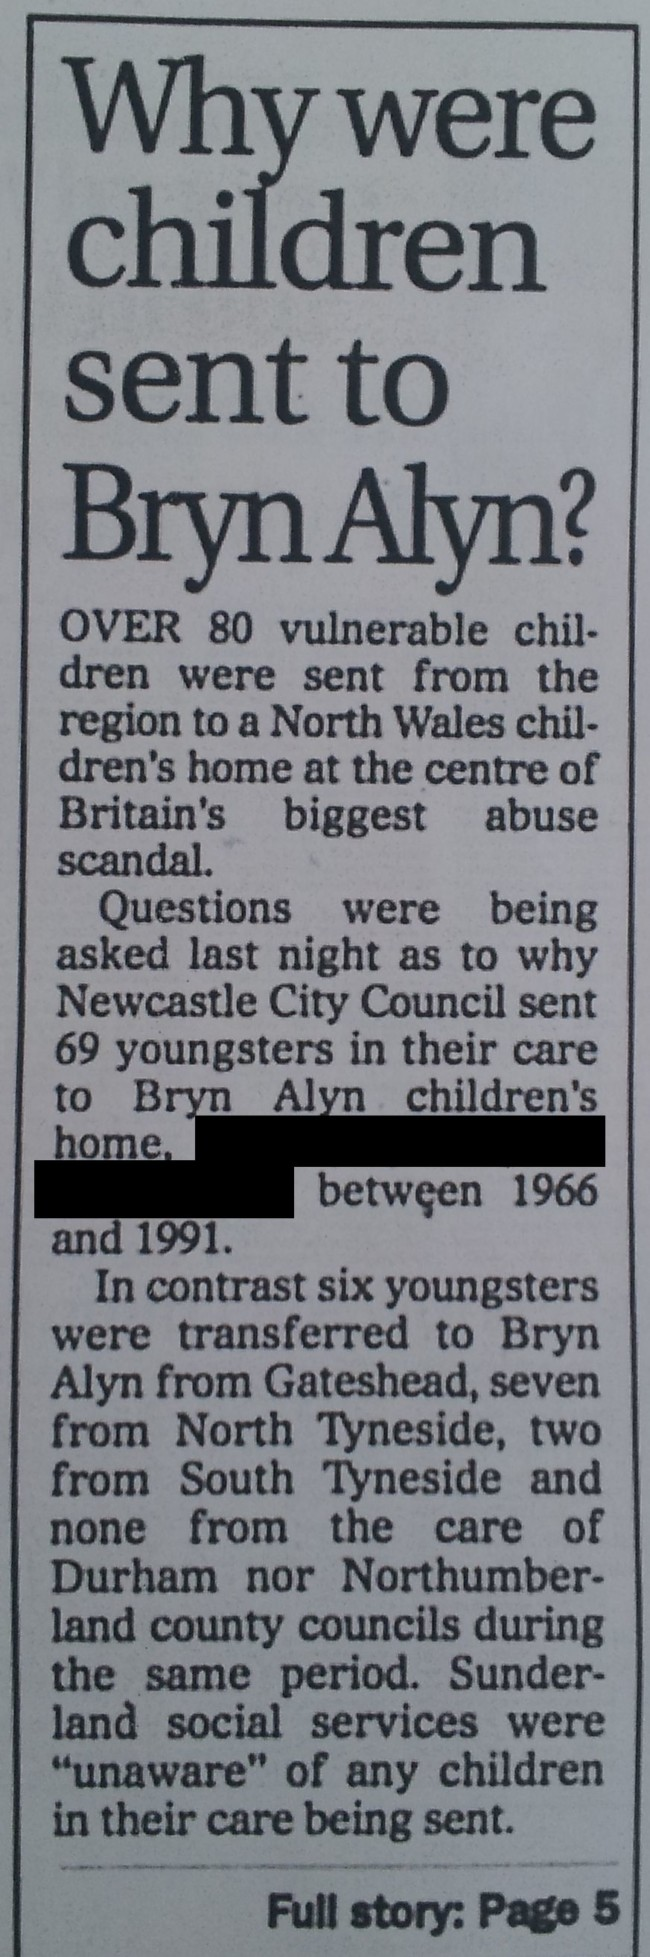 Newcastle Journal, 18th February 2000